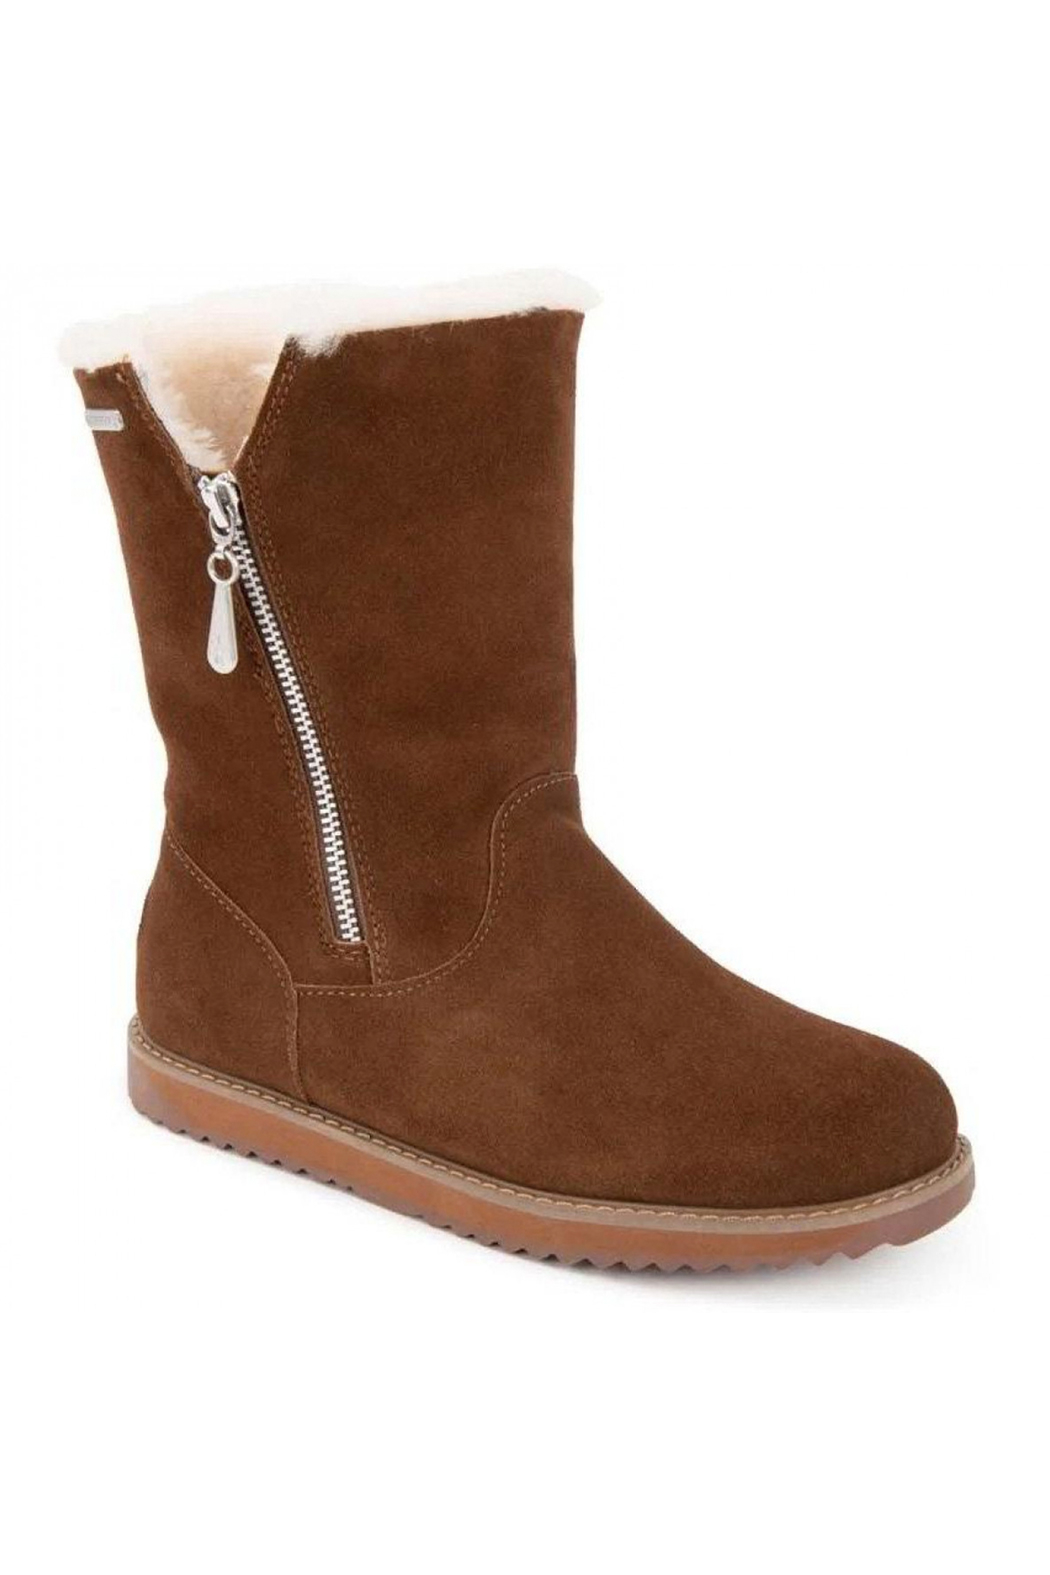 Emu Australia Gravelly Waterproof Women's Boots - Front Cropped Image